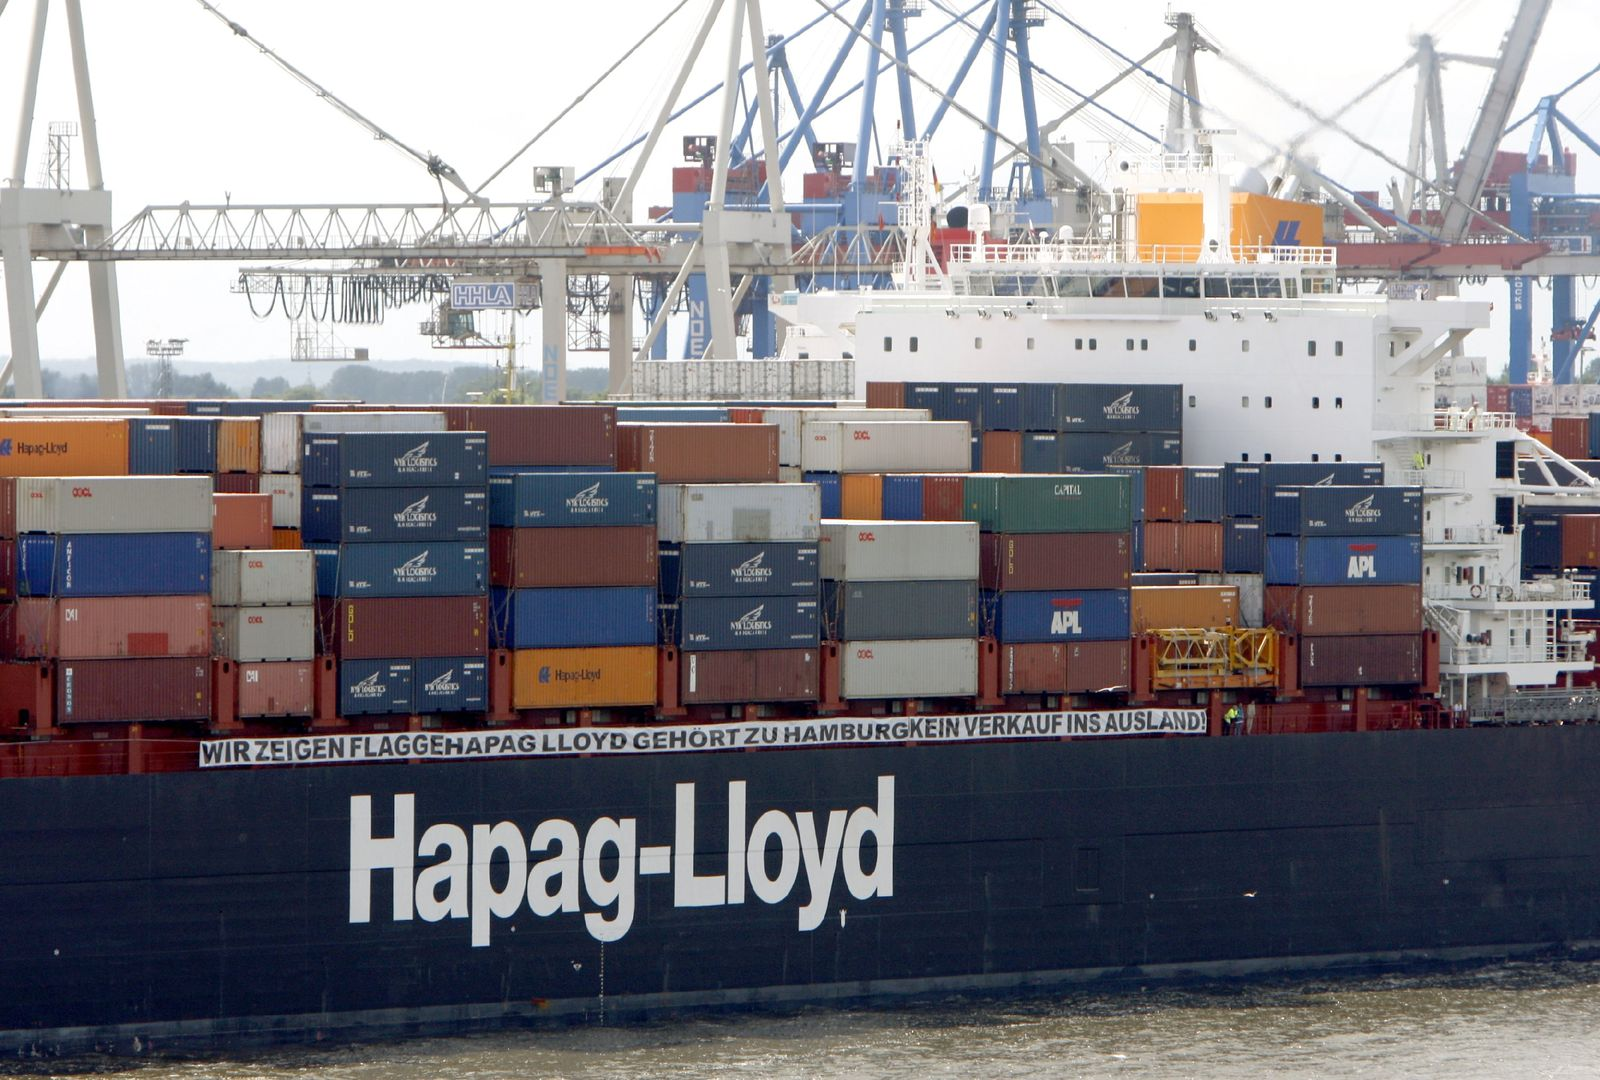 Containerschiff / Hapag-Lloyd